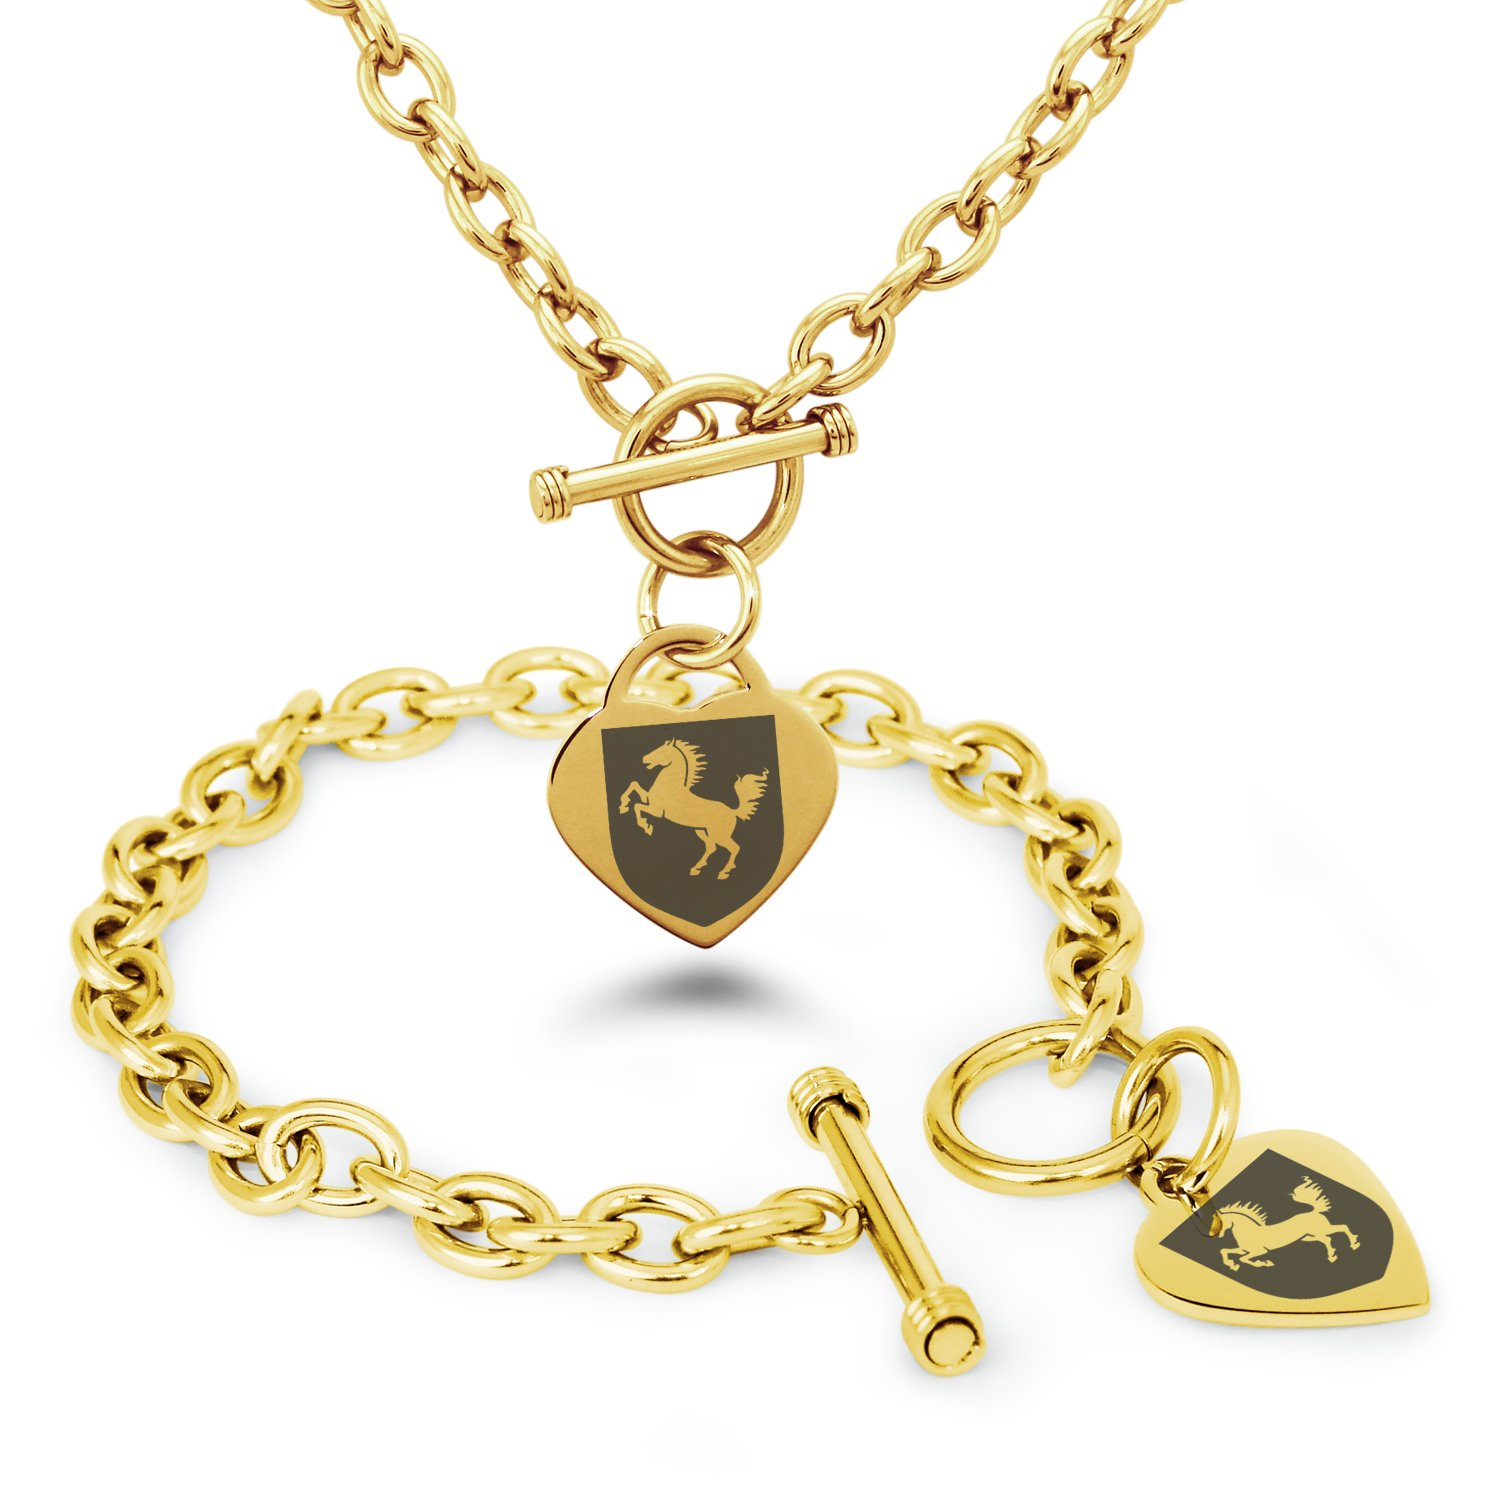 Tioneer Gold Plated Stainless Steel Horse Battle Coat of Arms Shield Symbols Heart Charm, Bracelet & Necklace Set